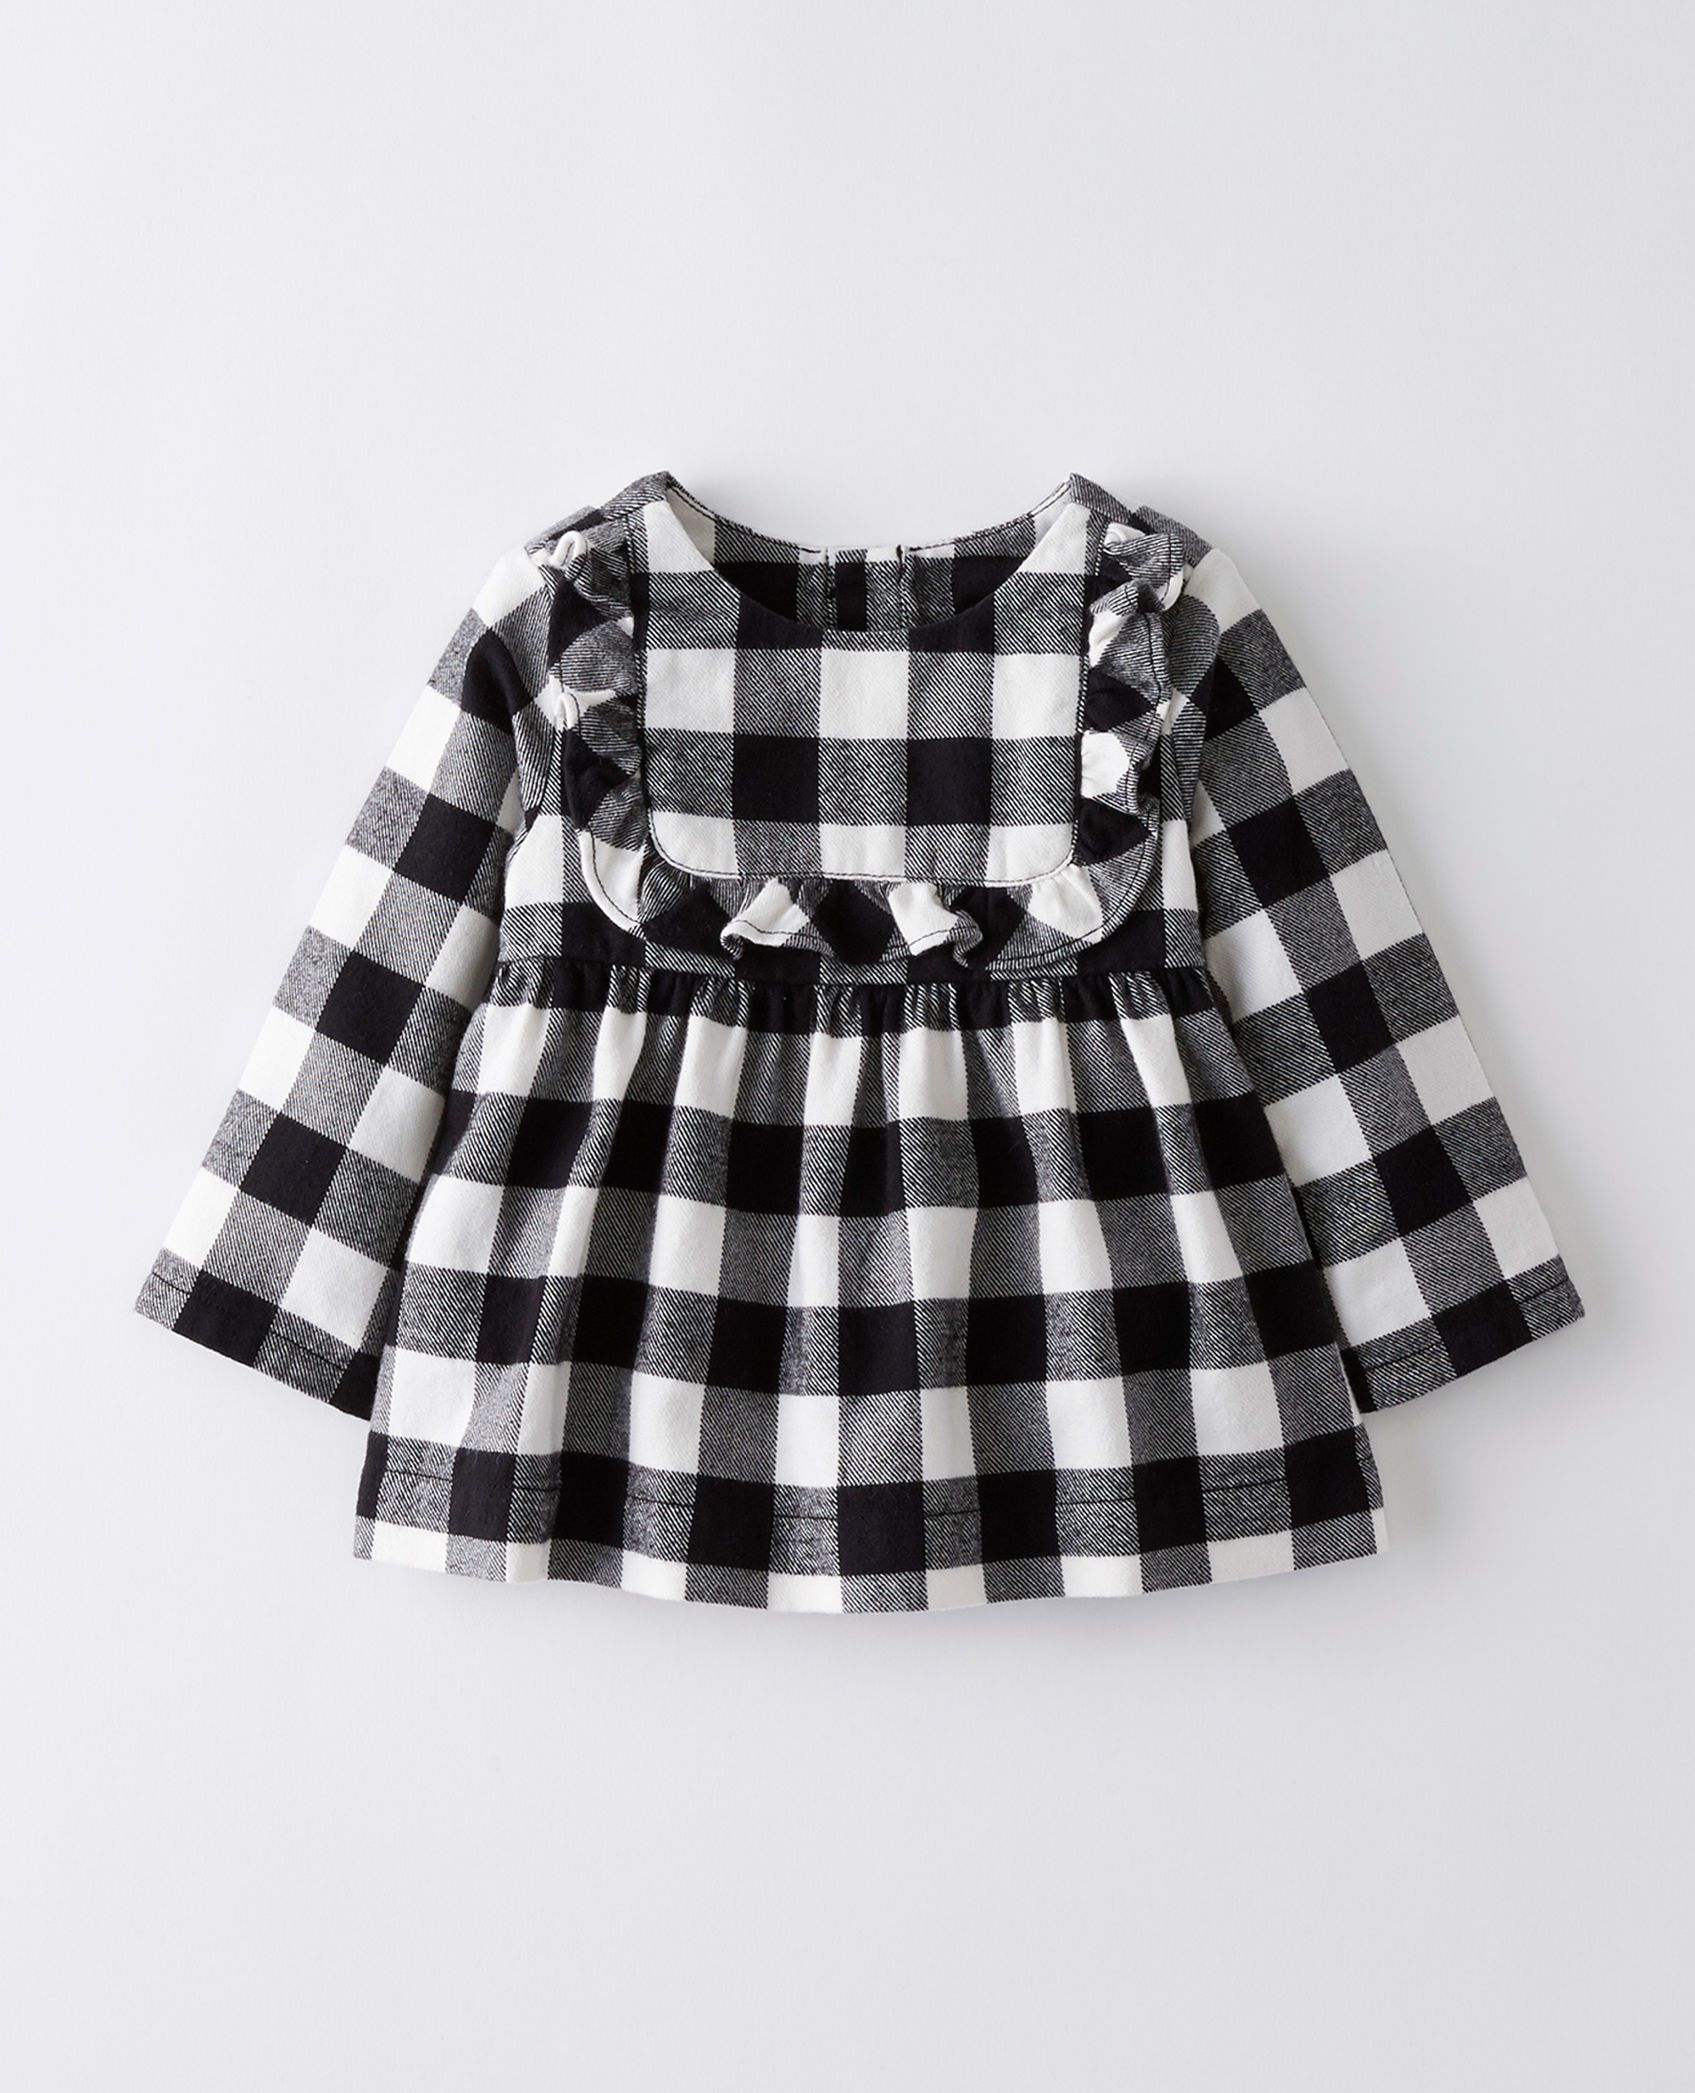 14++ Black and white plaid dress toddler ideas in 2021